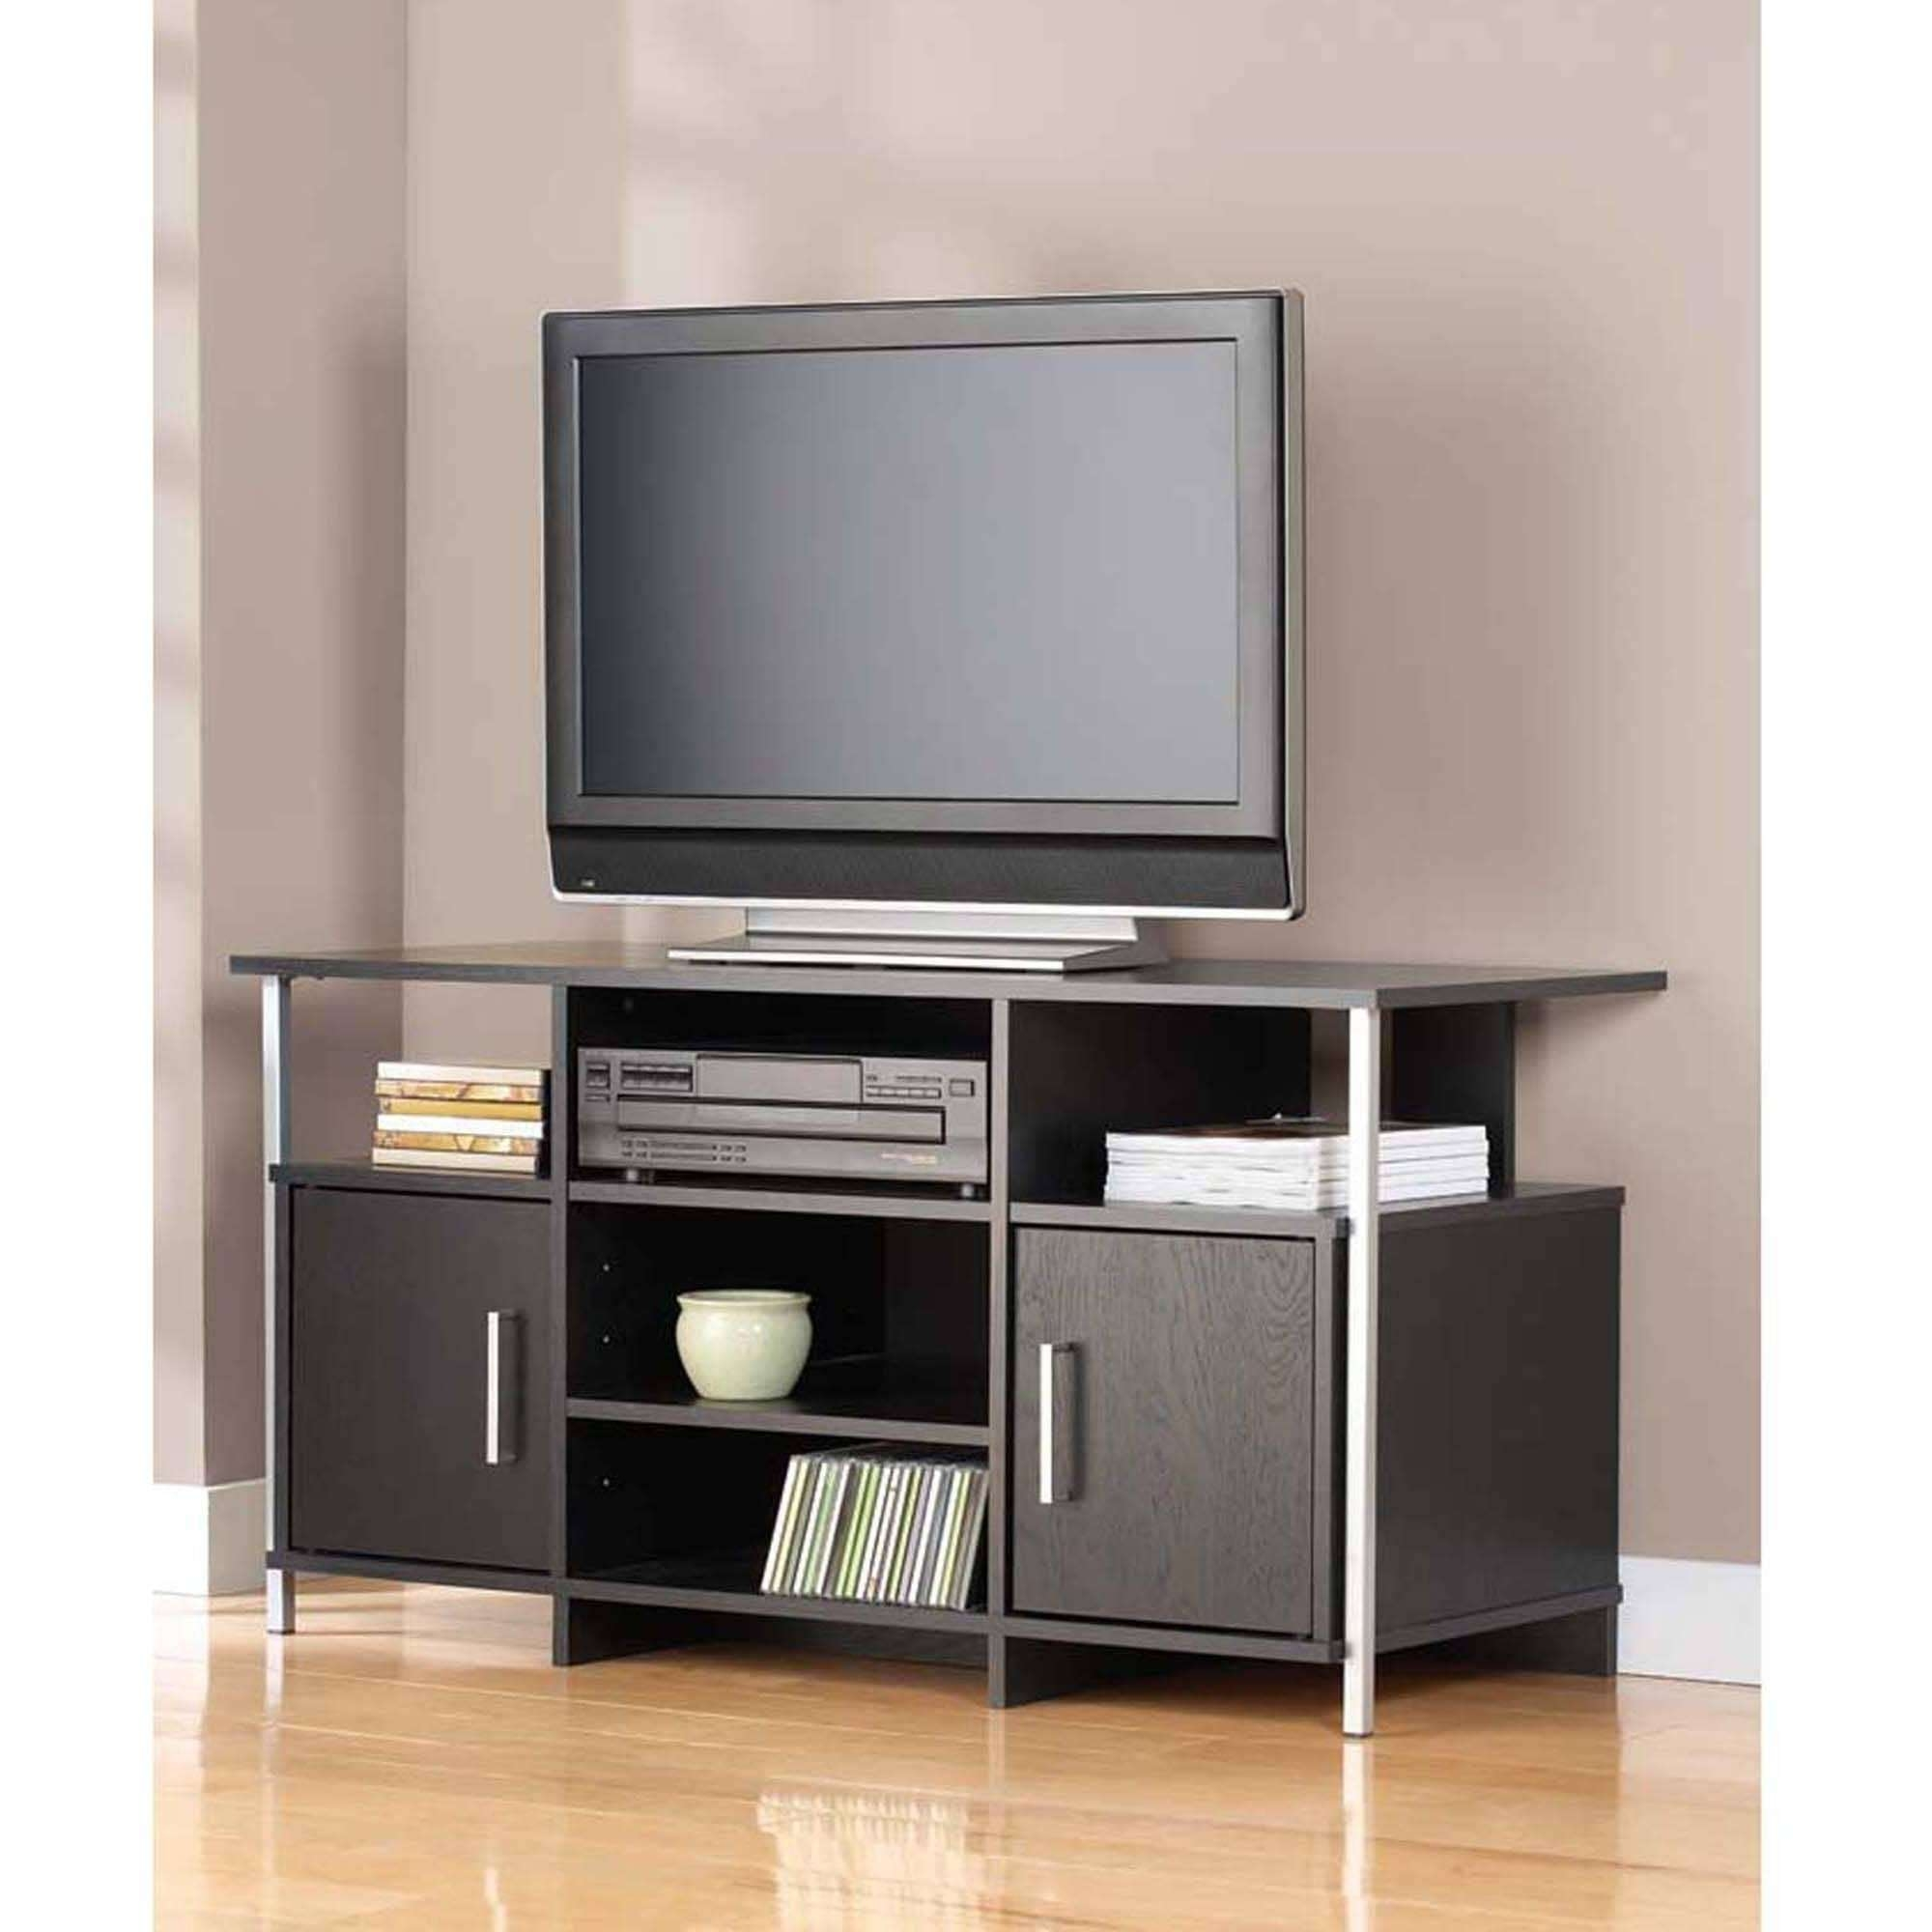 Fancy Tv Stands For Flat Screen Tvs 53 For Your Small Home Remodel Pertaining To Narrow Tv Stands For Flat Screens (View 4 of 15)